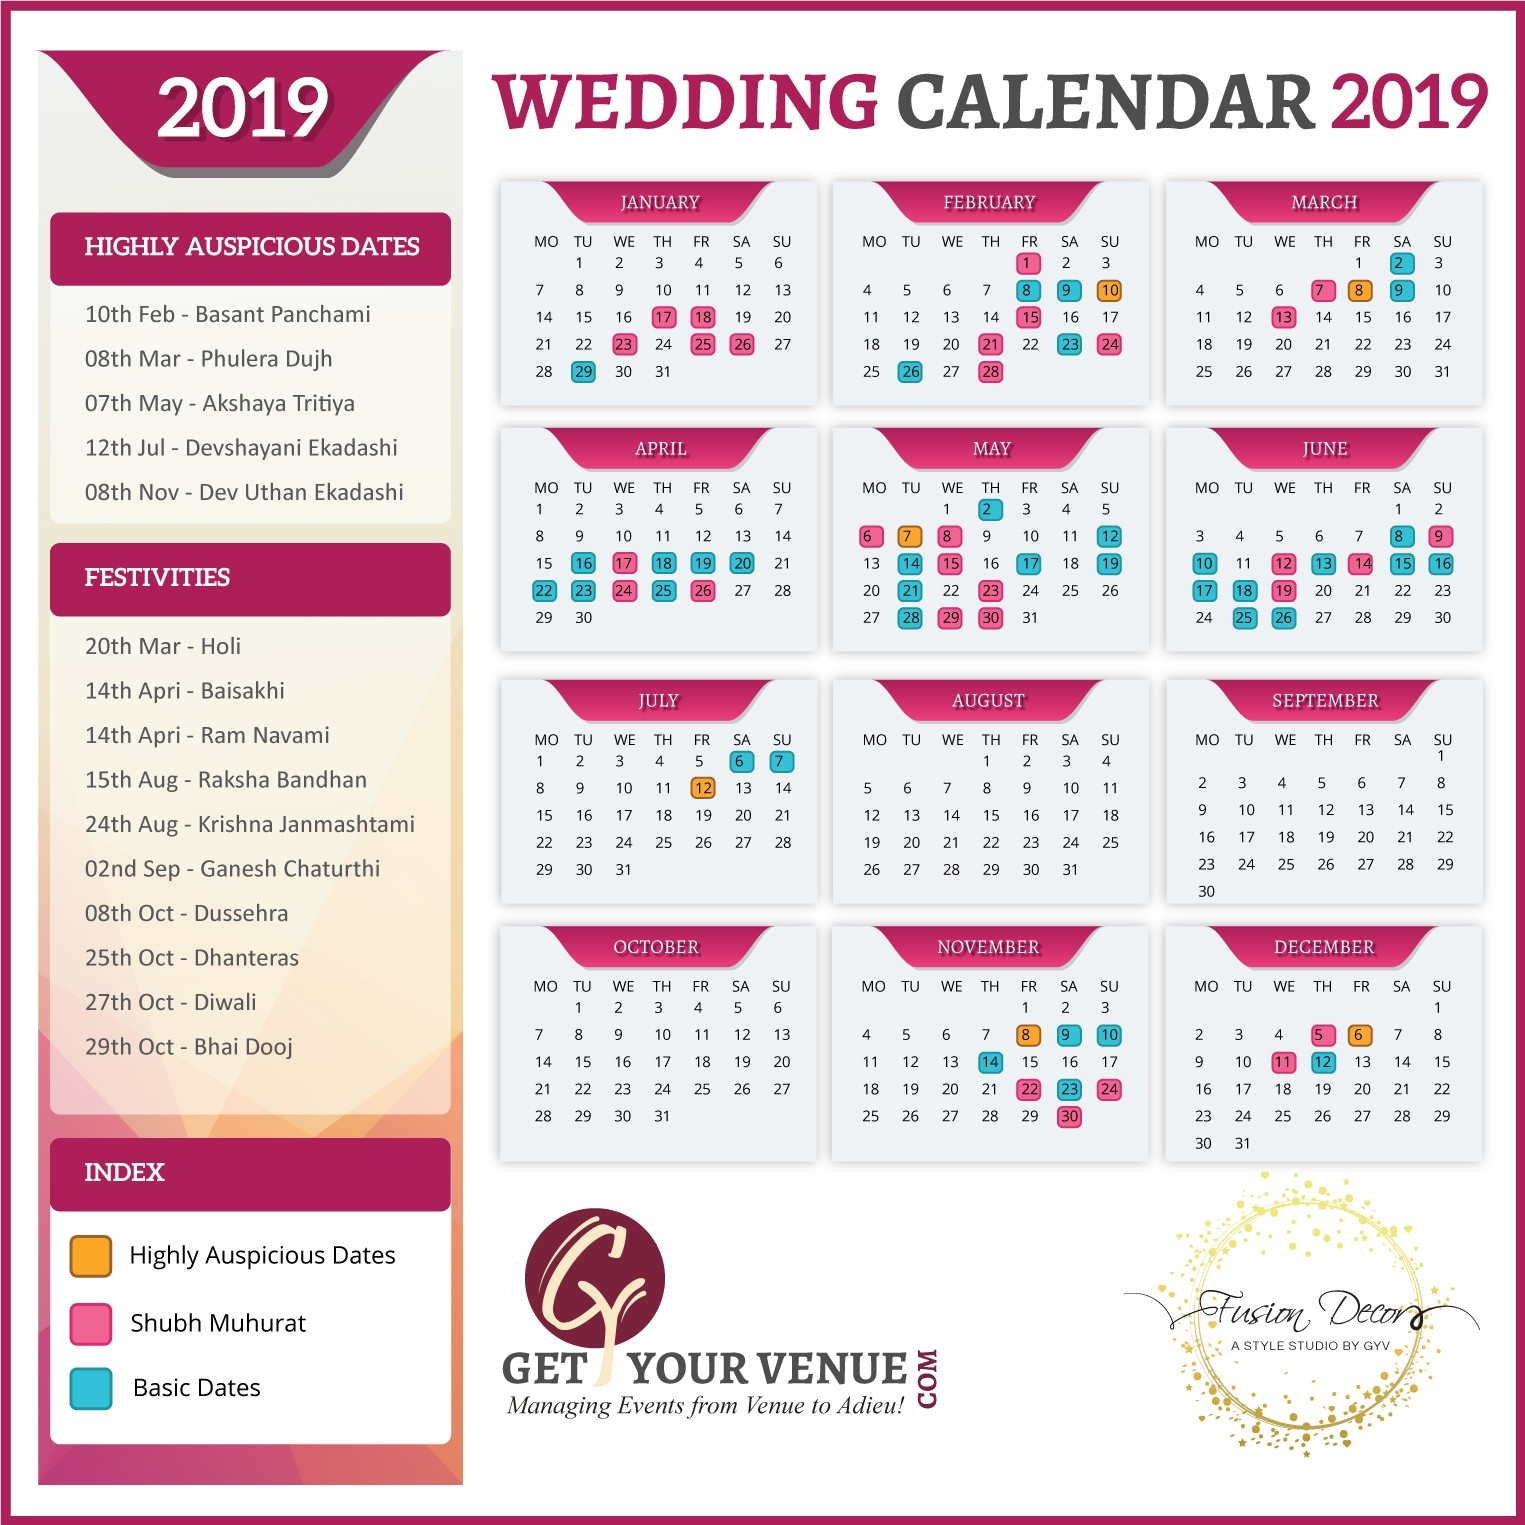 Best Wedding Dates To Get Married In 2019 - Gyv Blog-January 2020 Calendar Marriage Dates